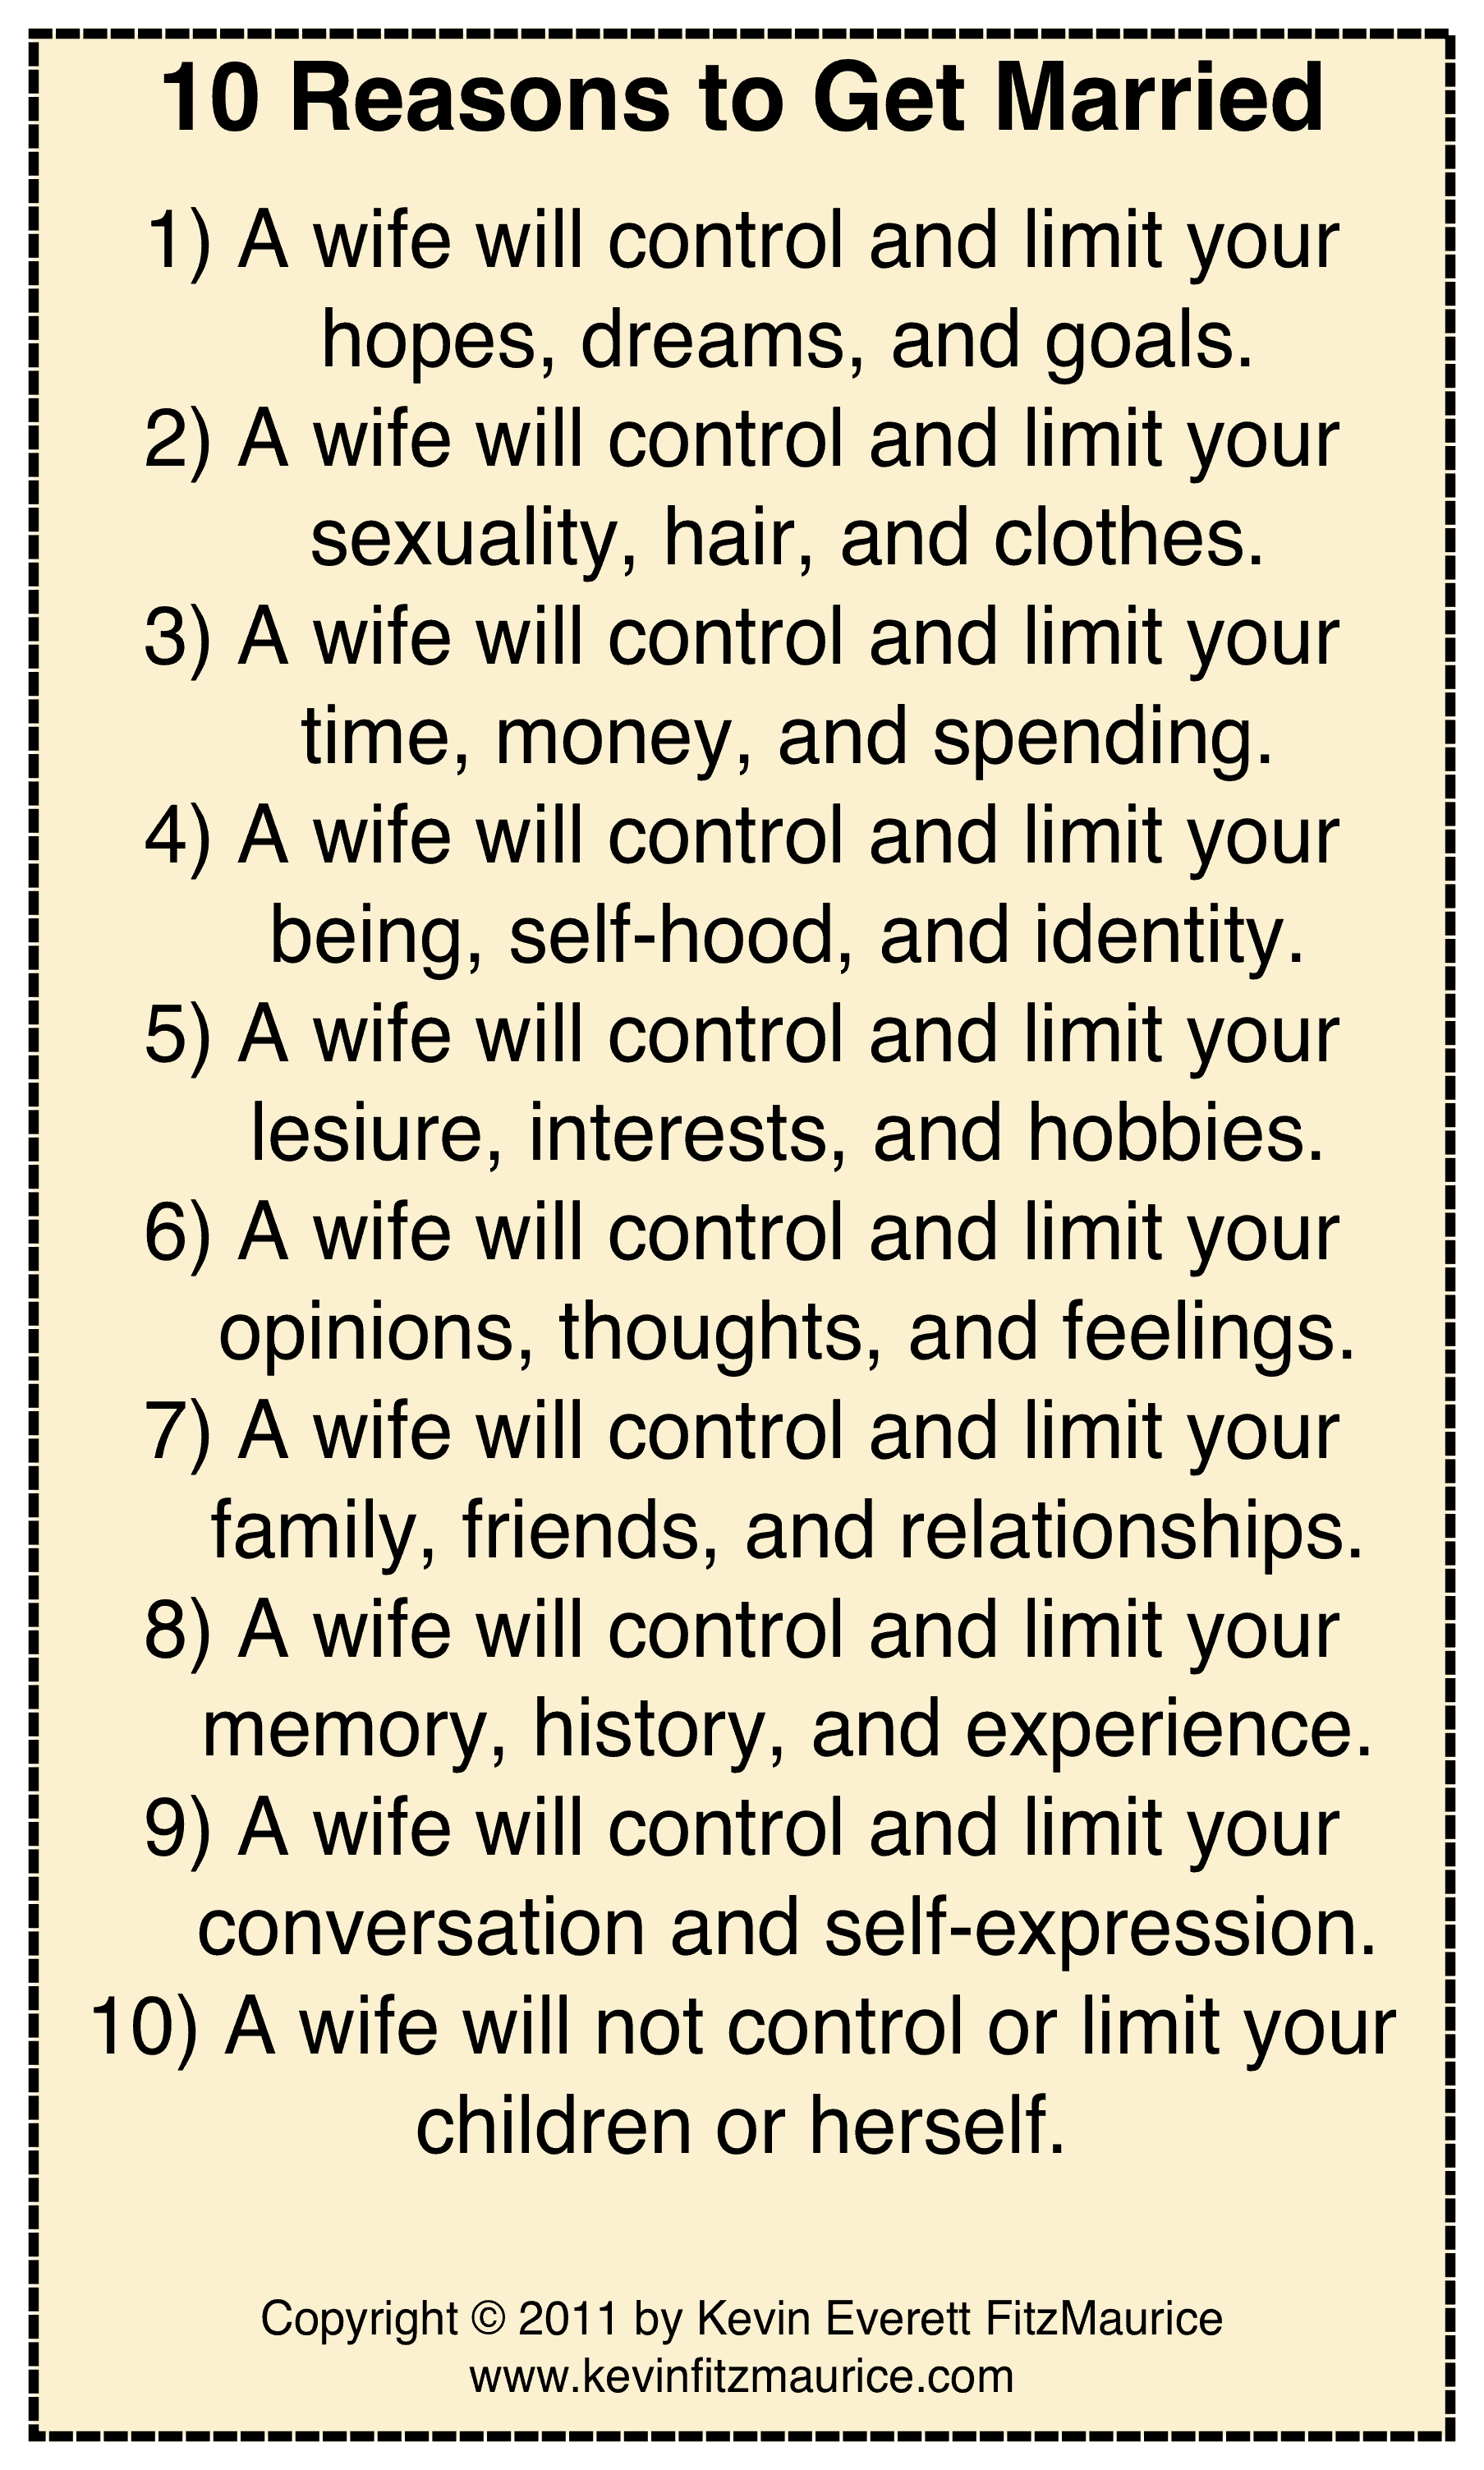 10 reasons to get married